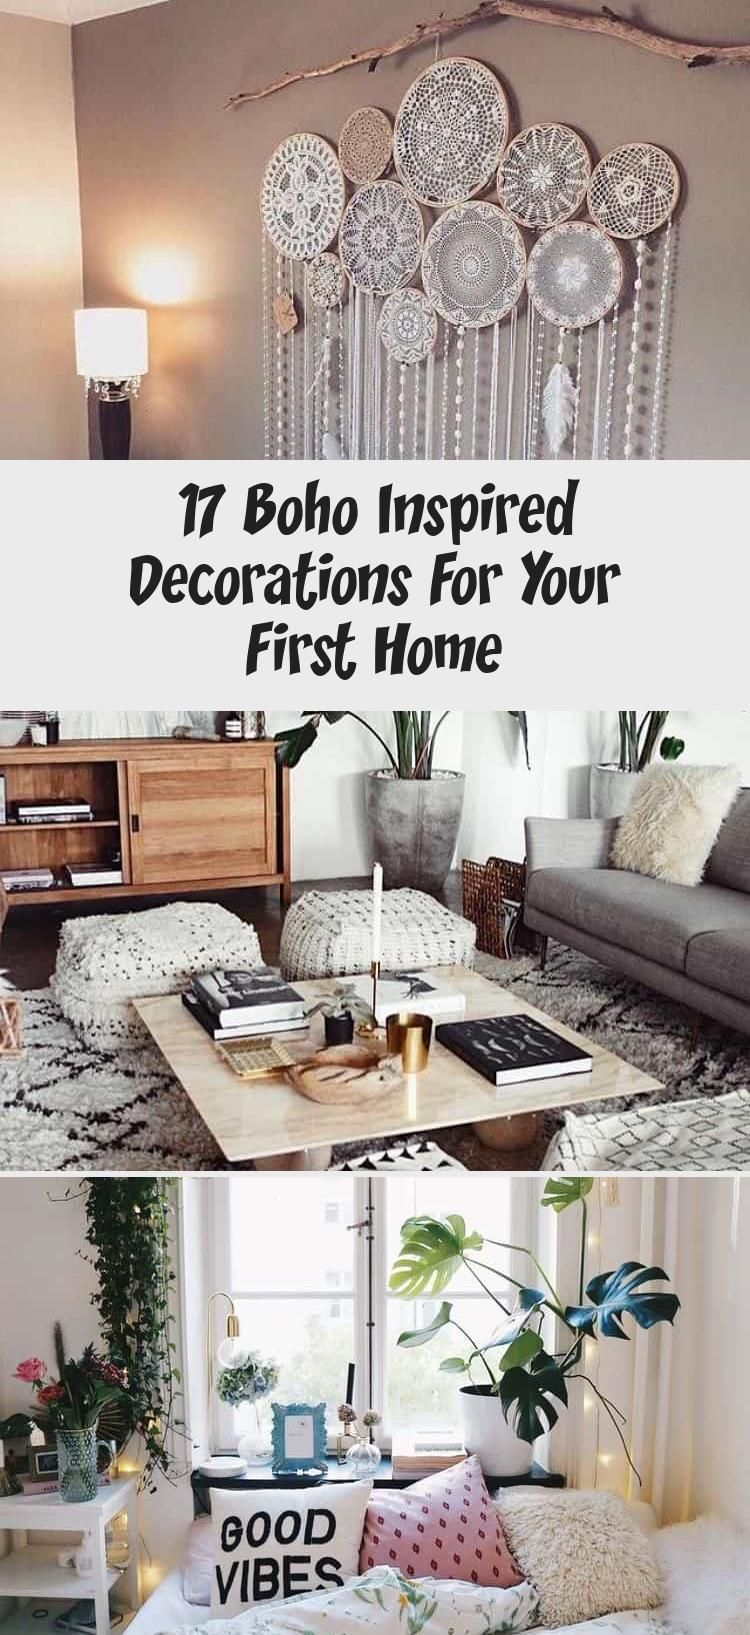 17 Boho Inspired Decorations For Your First Home In 2020 With